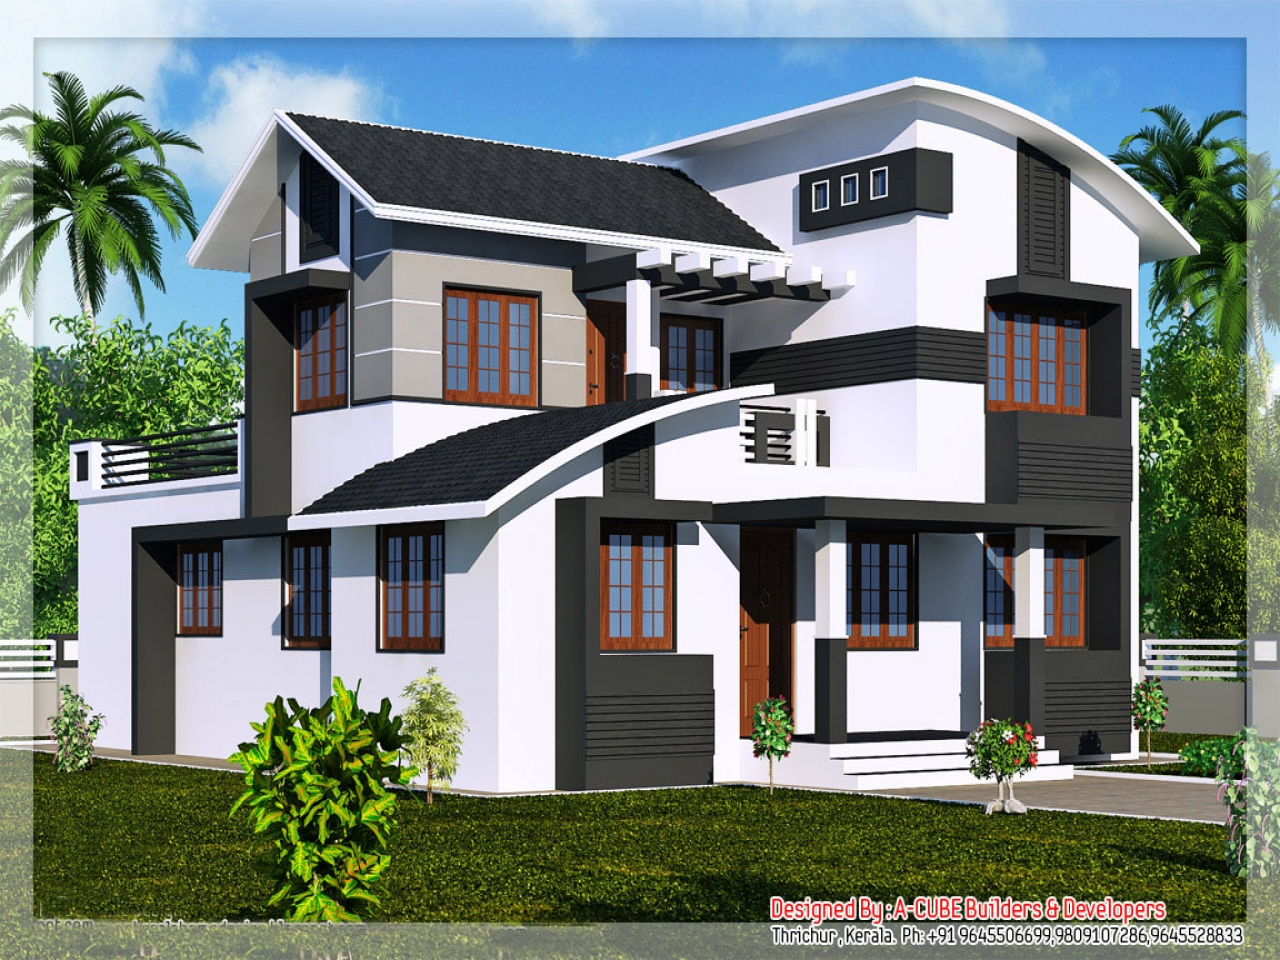 India duplex house design duplex house plans and designs for Independent house designs in india